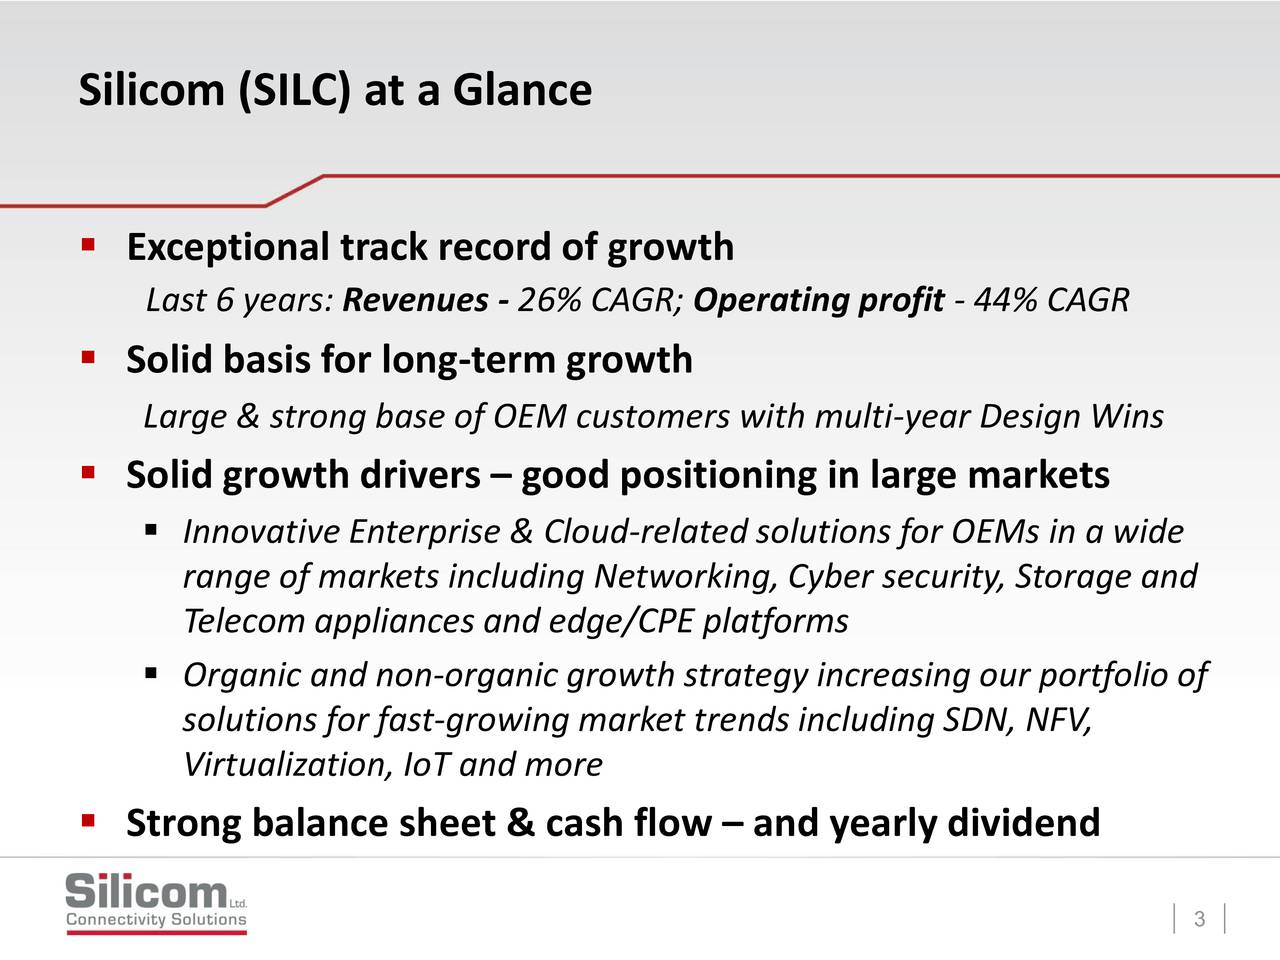 Exceptional track record of growth Last 6 years: Revenues - 26% CAGR; Operating profit - 44% CAGR Solid basis for long-term growth Large & strong base of OEM customers with multi-year Design Wins Solid growth drivers  good positioning in large markets Innovative Enterprise & Cloud-related solutions for OEMs in a wide range of markets including Networking, Cyber security, Storage and Telecom appliances and edge/CPE platforms Organic and non-organic growth strategy increasing our portfolio of solutions for fast-growing market trends including SDN, NFV, Virtualization, IoT and more Strong balance sheet & cash flow  and yearly dividend 3